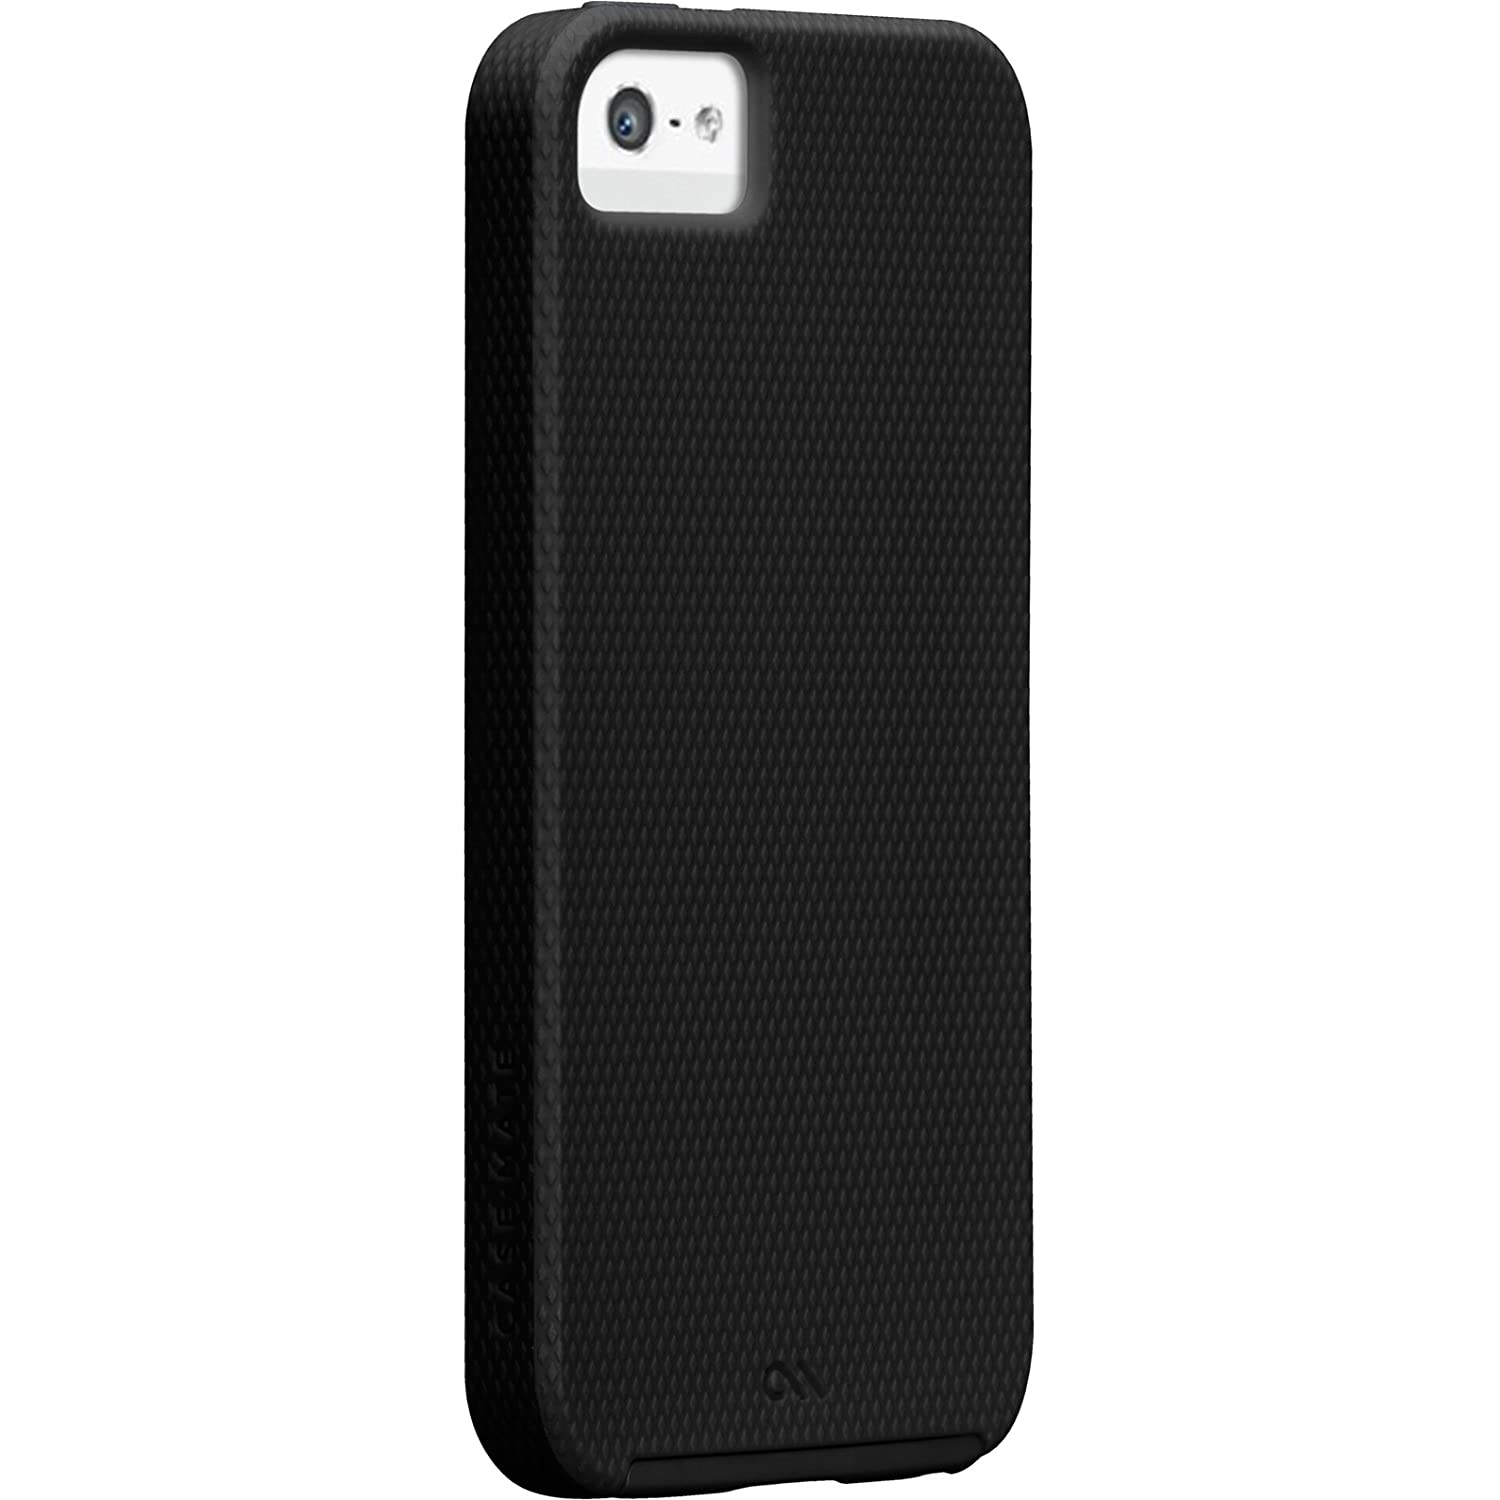 Medical research and corporate technology case mate iphone 4 case - Amazon Com Case Mate Tough Case For Iphone 5 5s Retail Packaging Black Cell Phones Accessories